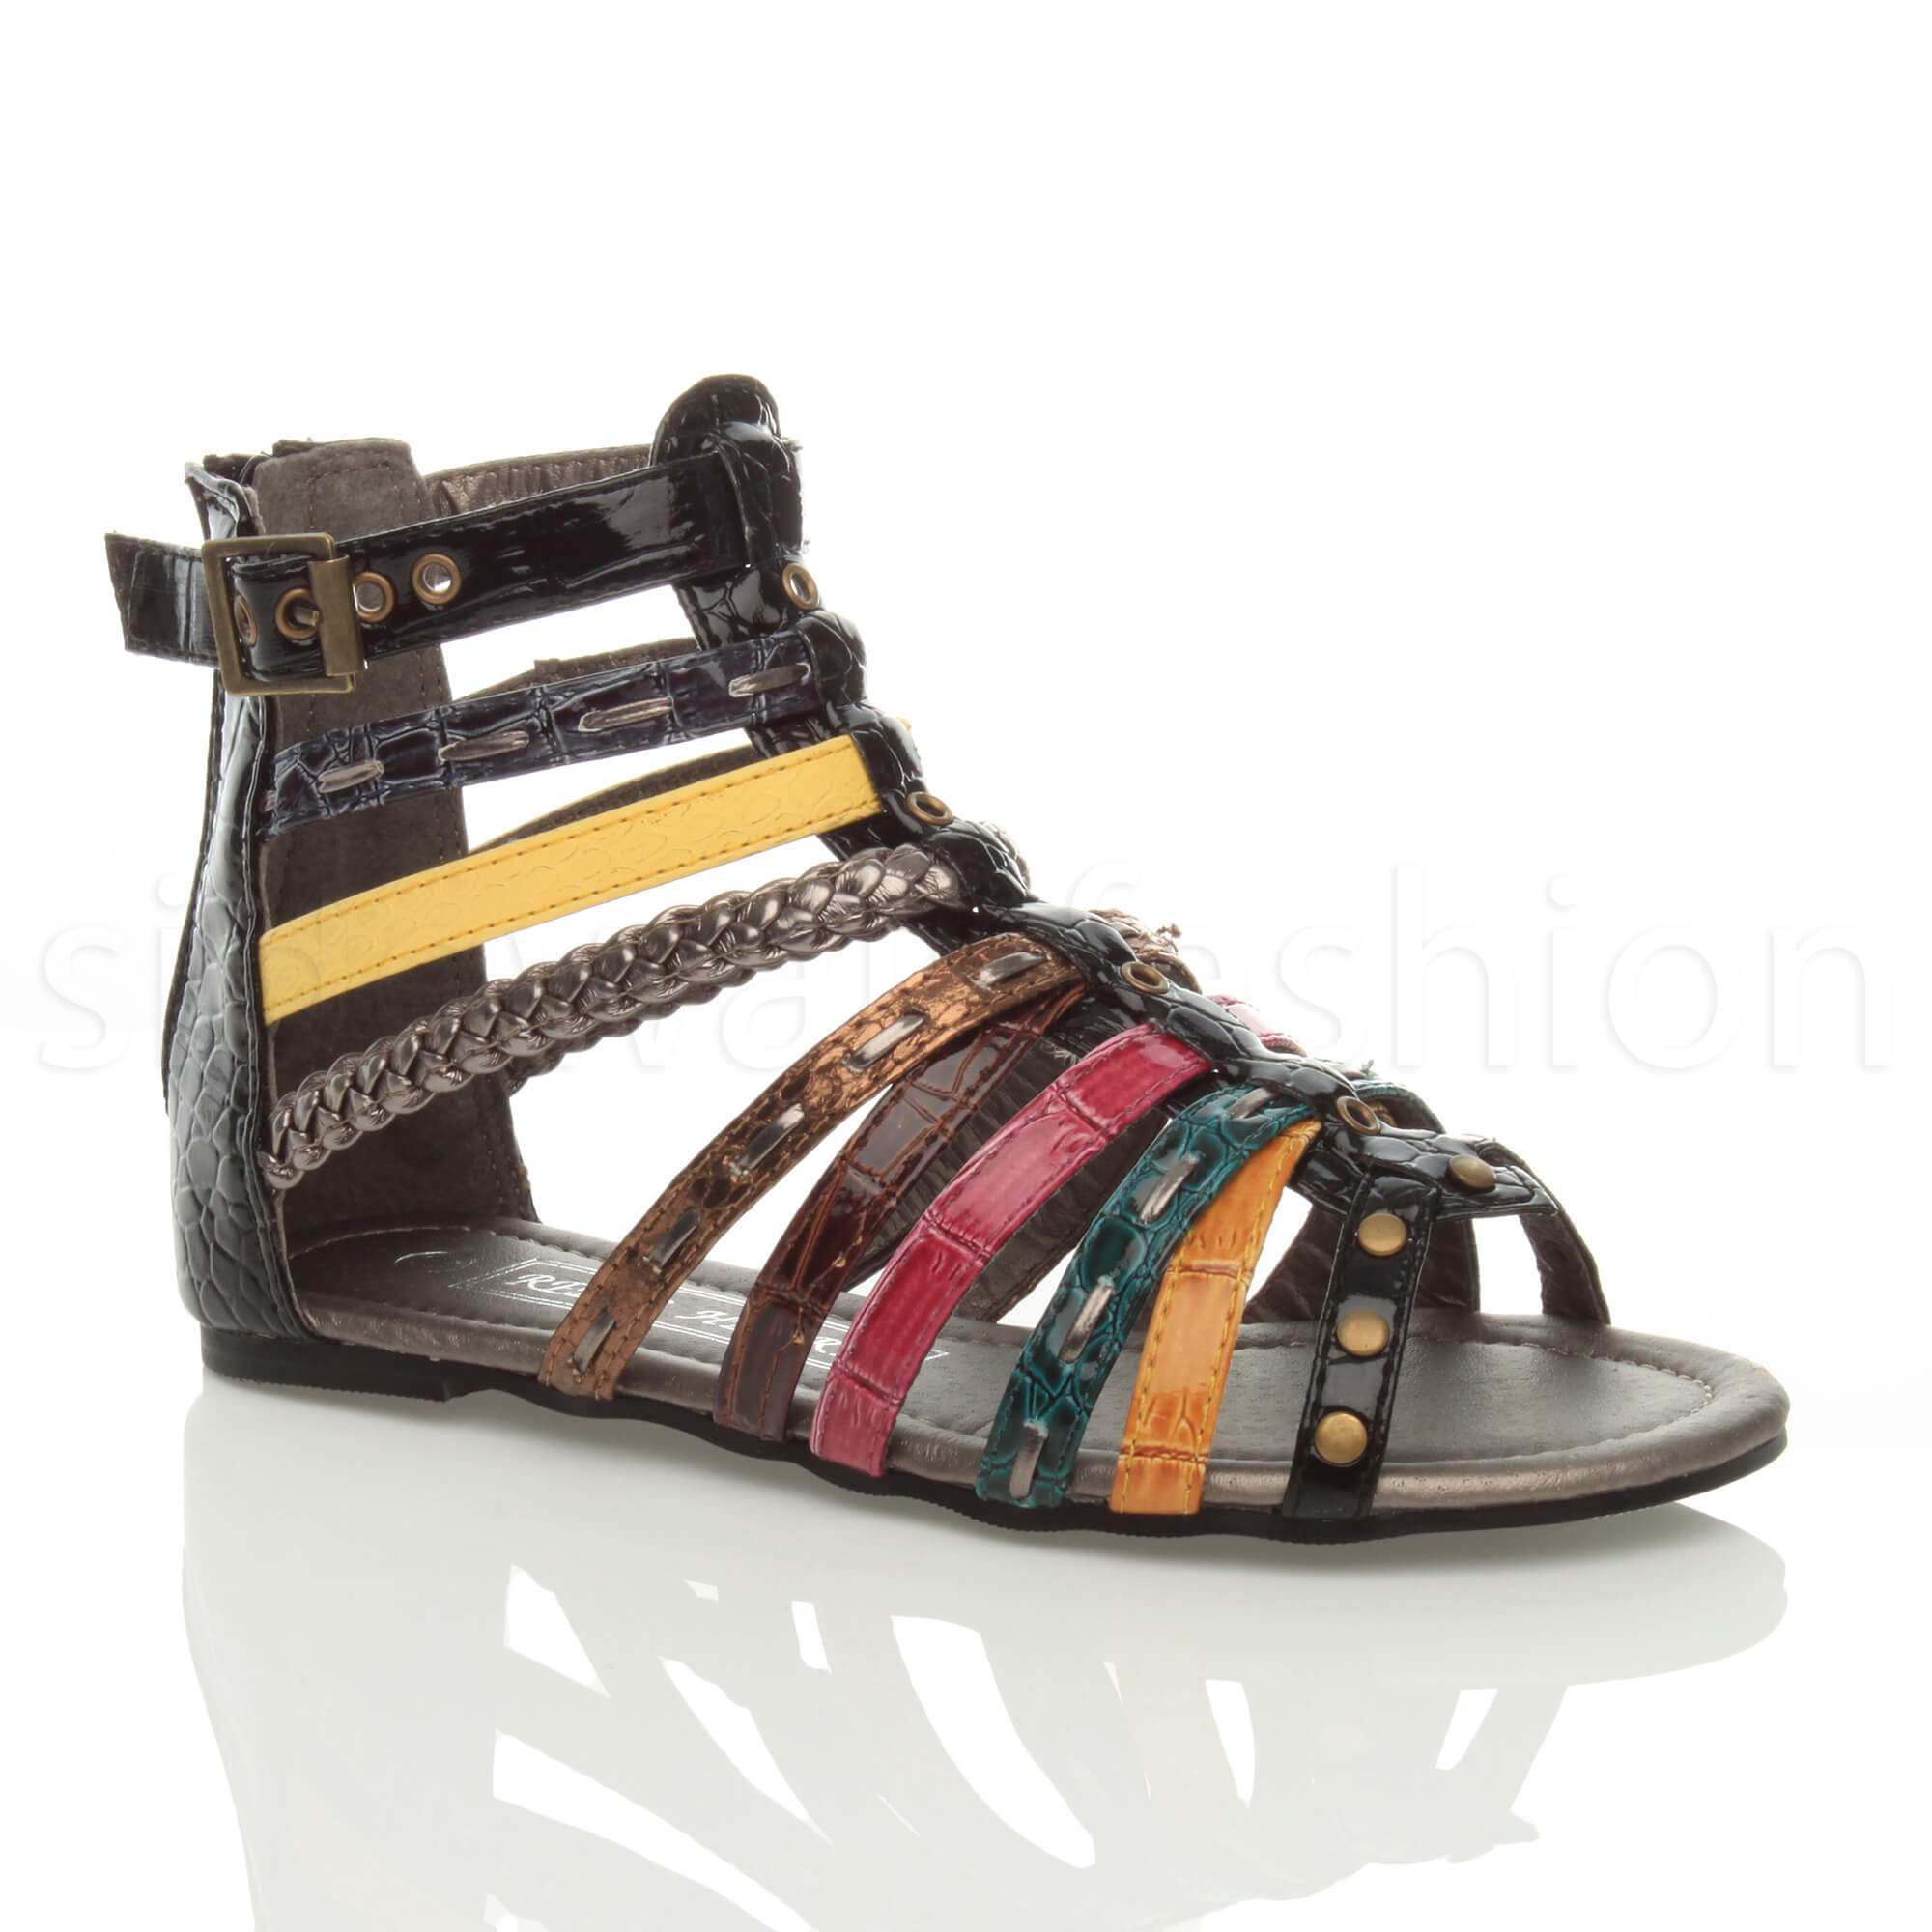 b850d0f3592 Details about Girls kids childrens flat strappy summer multicoloured gladiator  sandals size